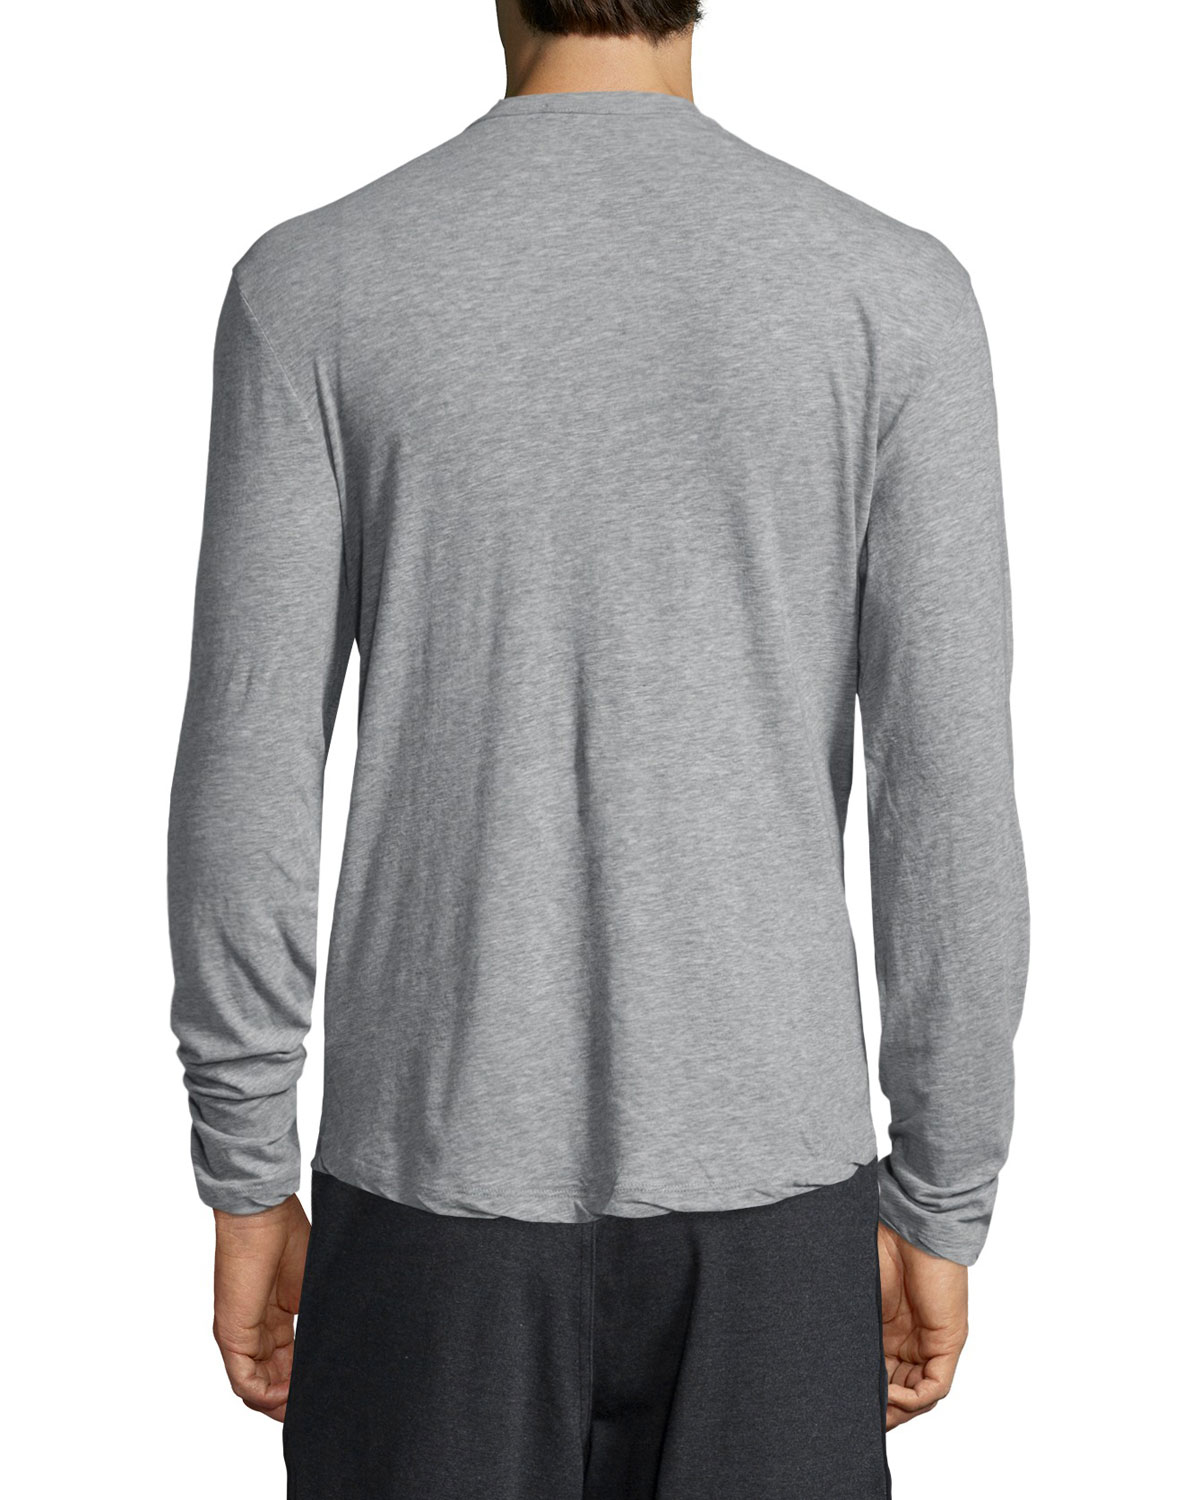 James perse long sleeve knit henley shirt in gray for men for James perse henley shirt